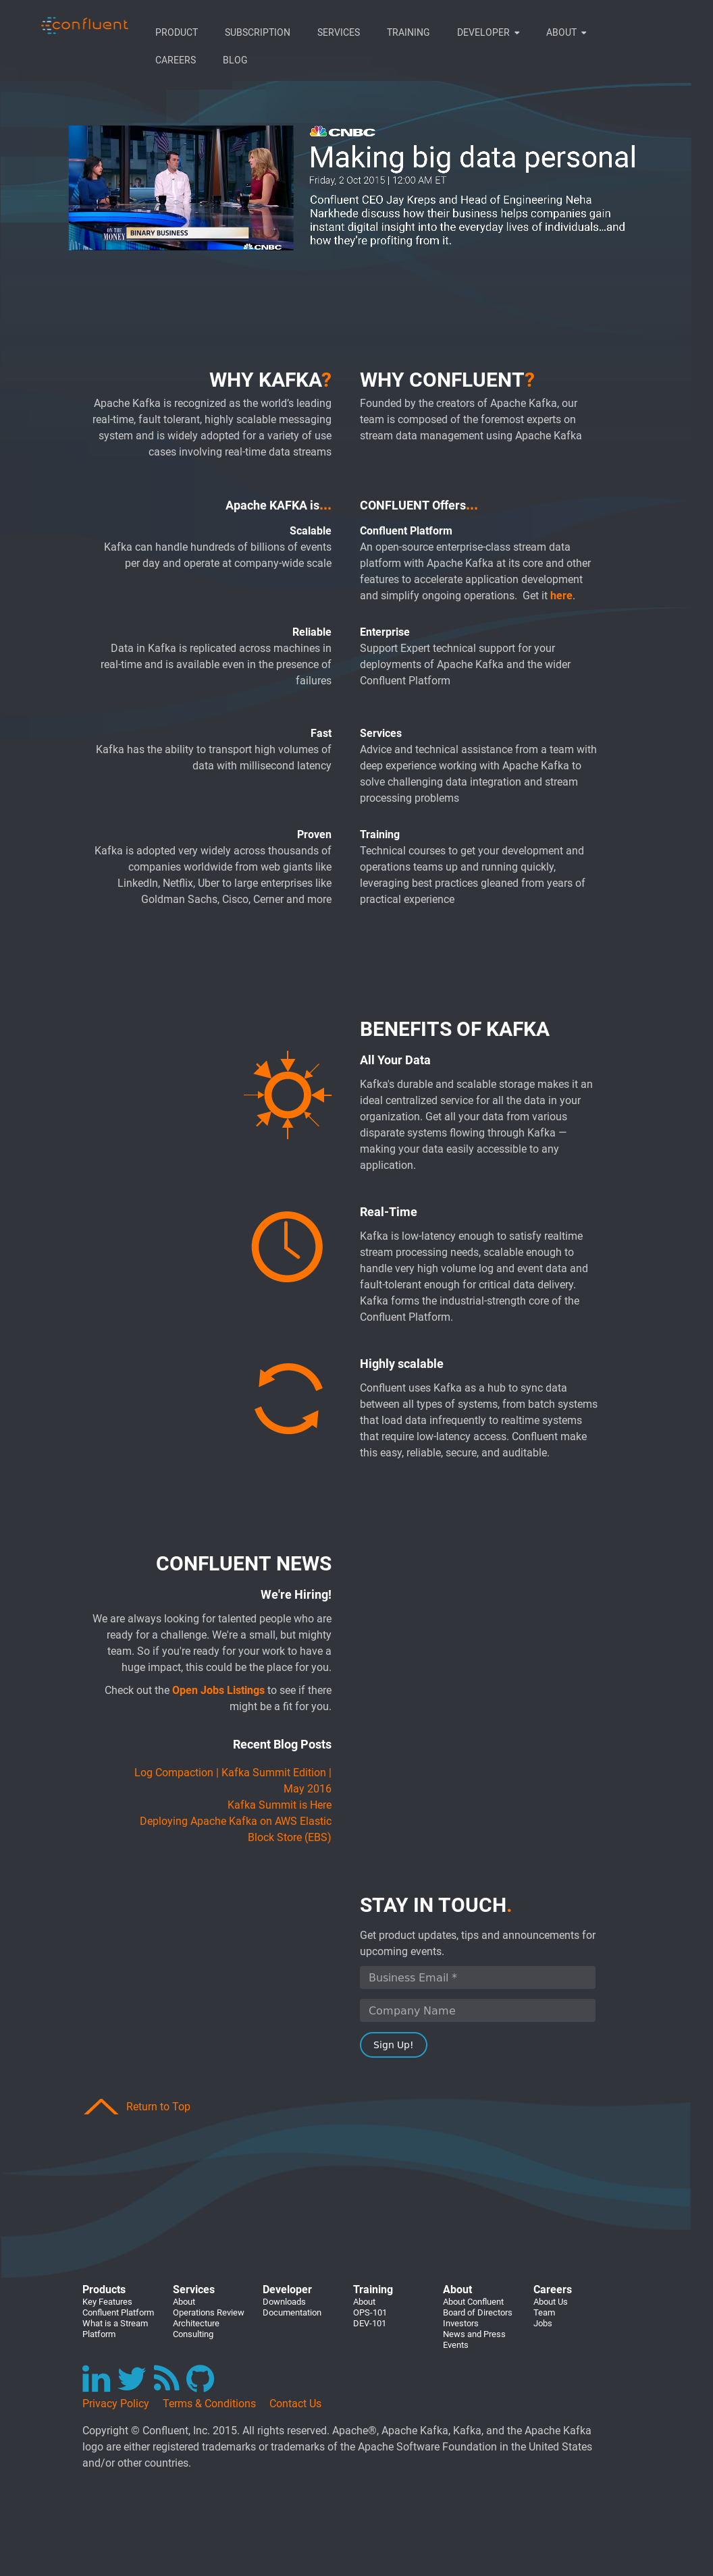 Owler Reports - Confluent Blog Kafka Connect Sink for